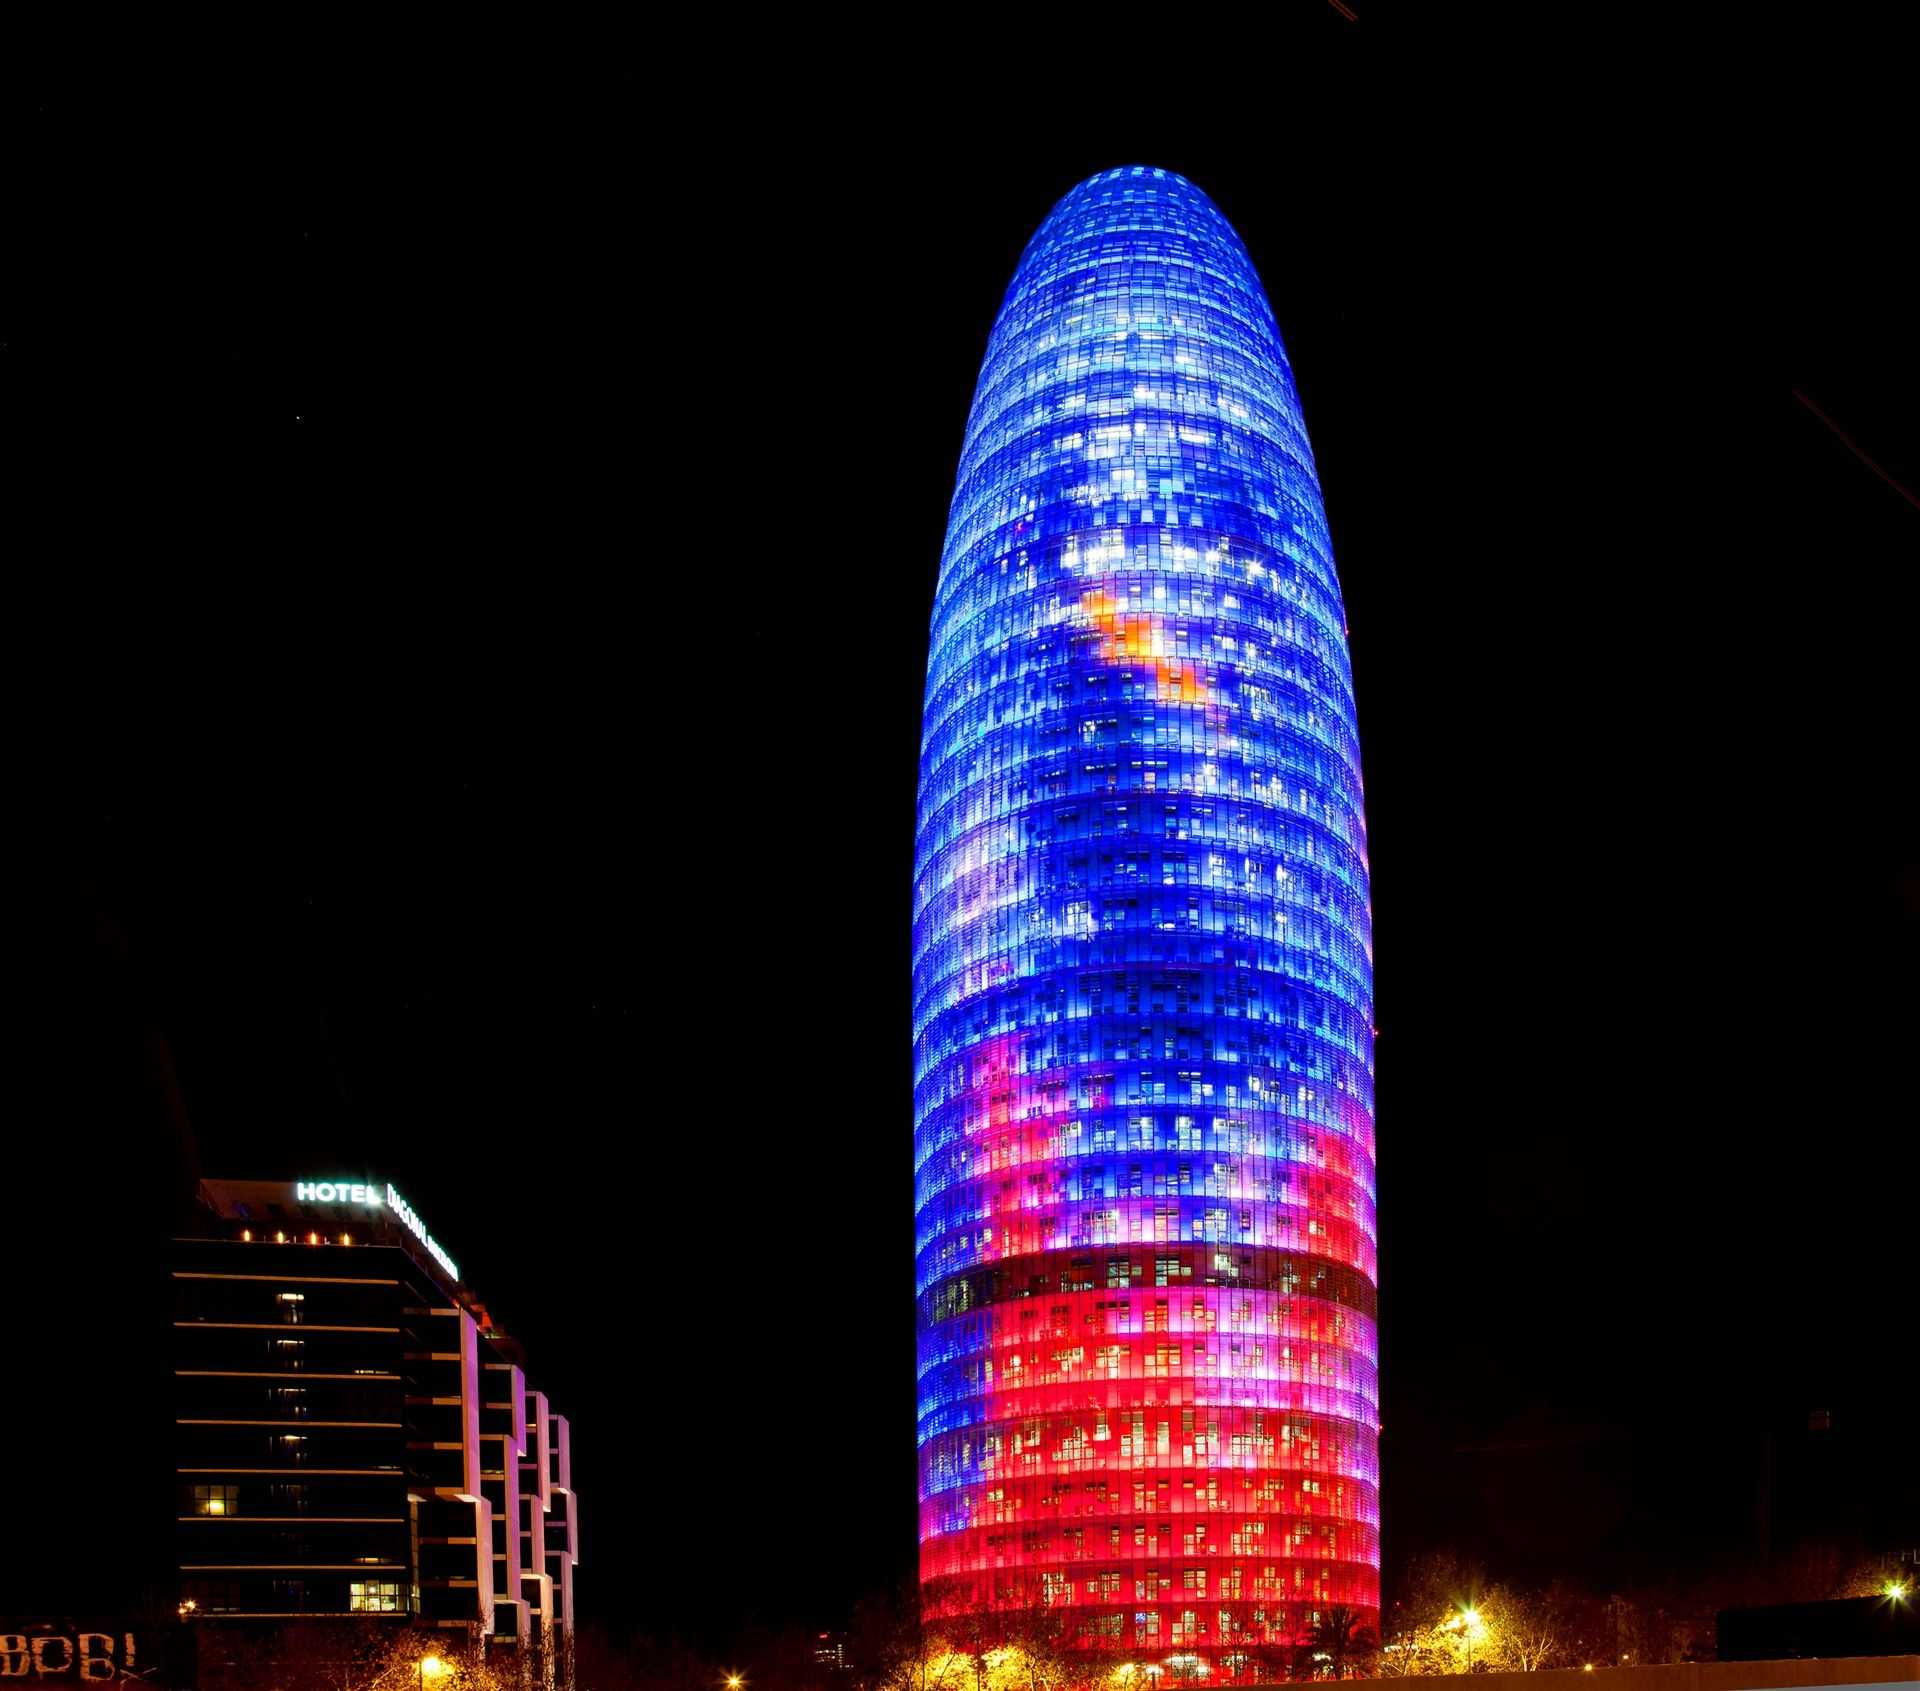 The Agbar Tower